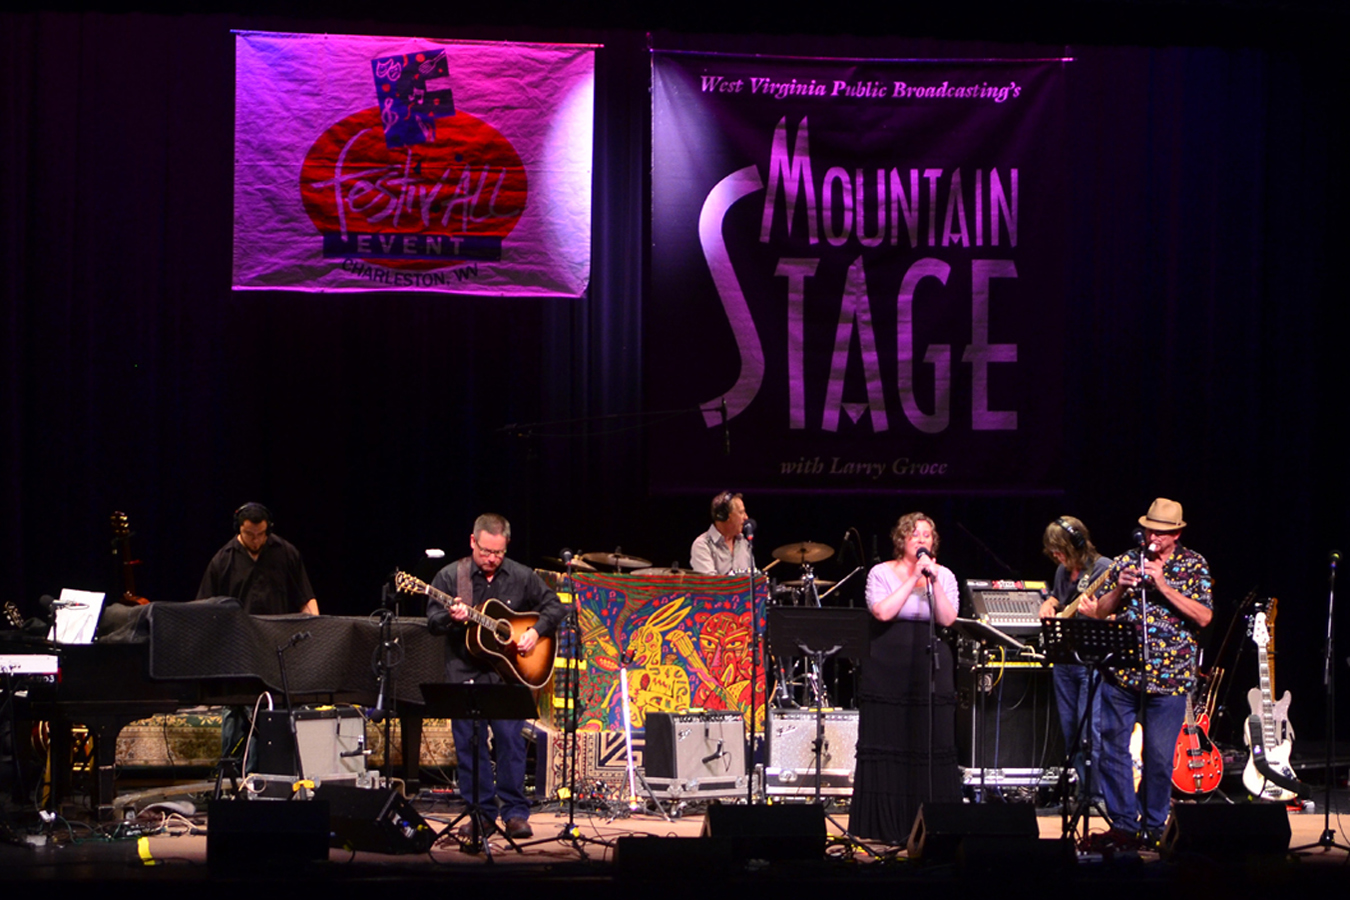 photo byBrian Blauser/Mountain Stage